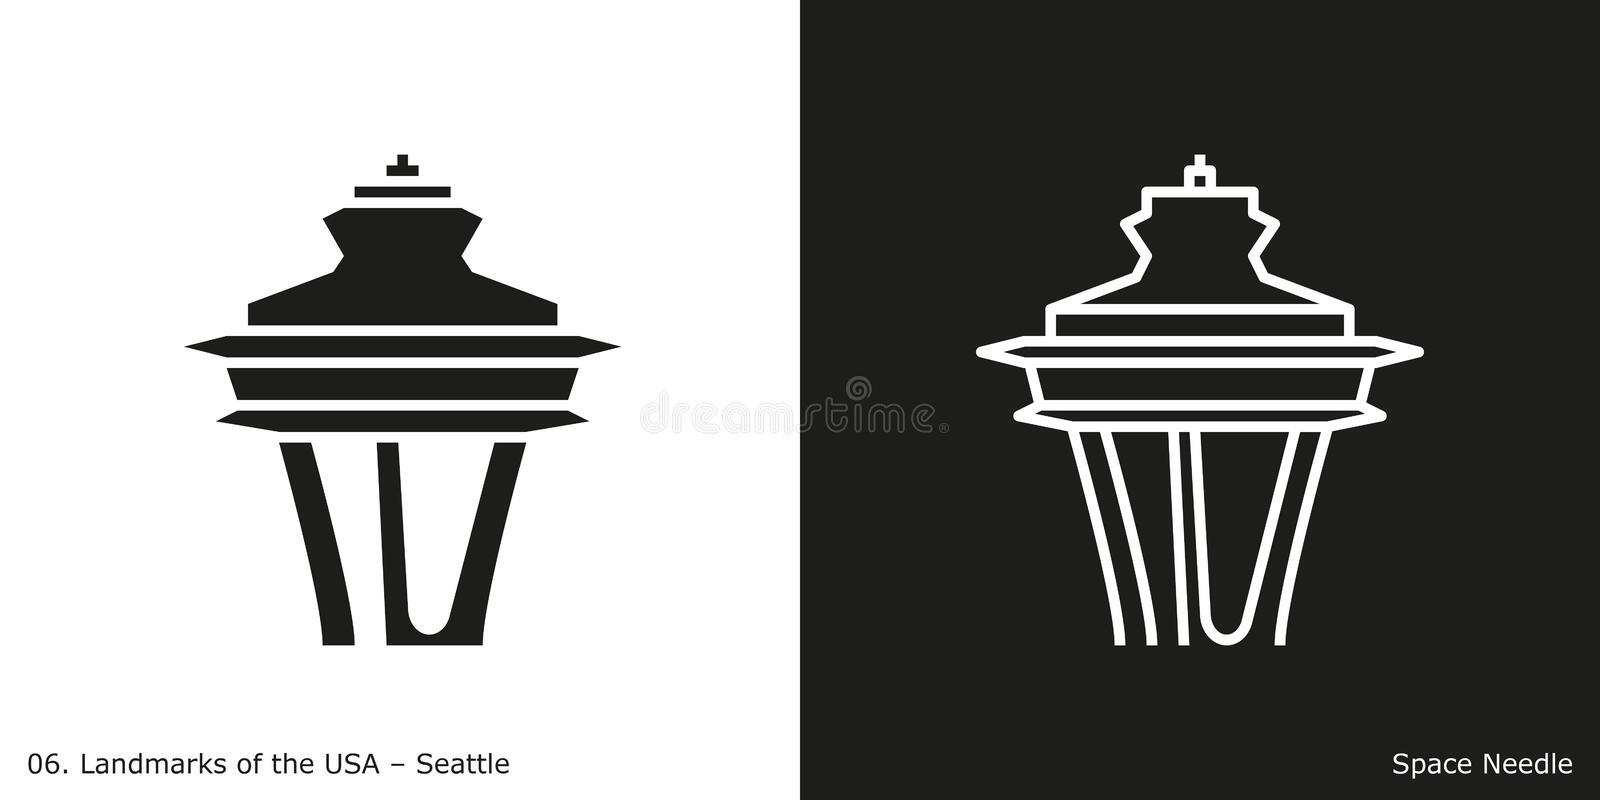 Space Needle in Seattle vector illustration